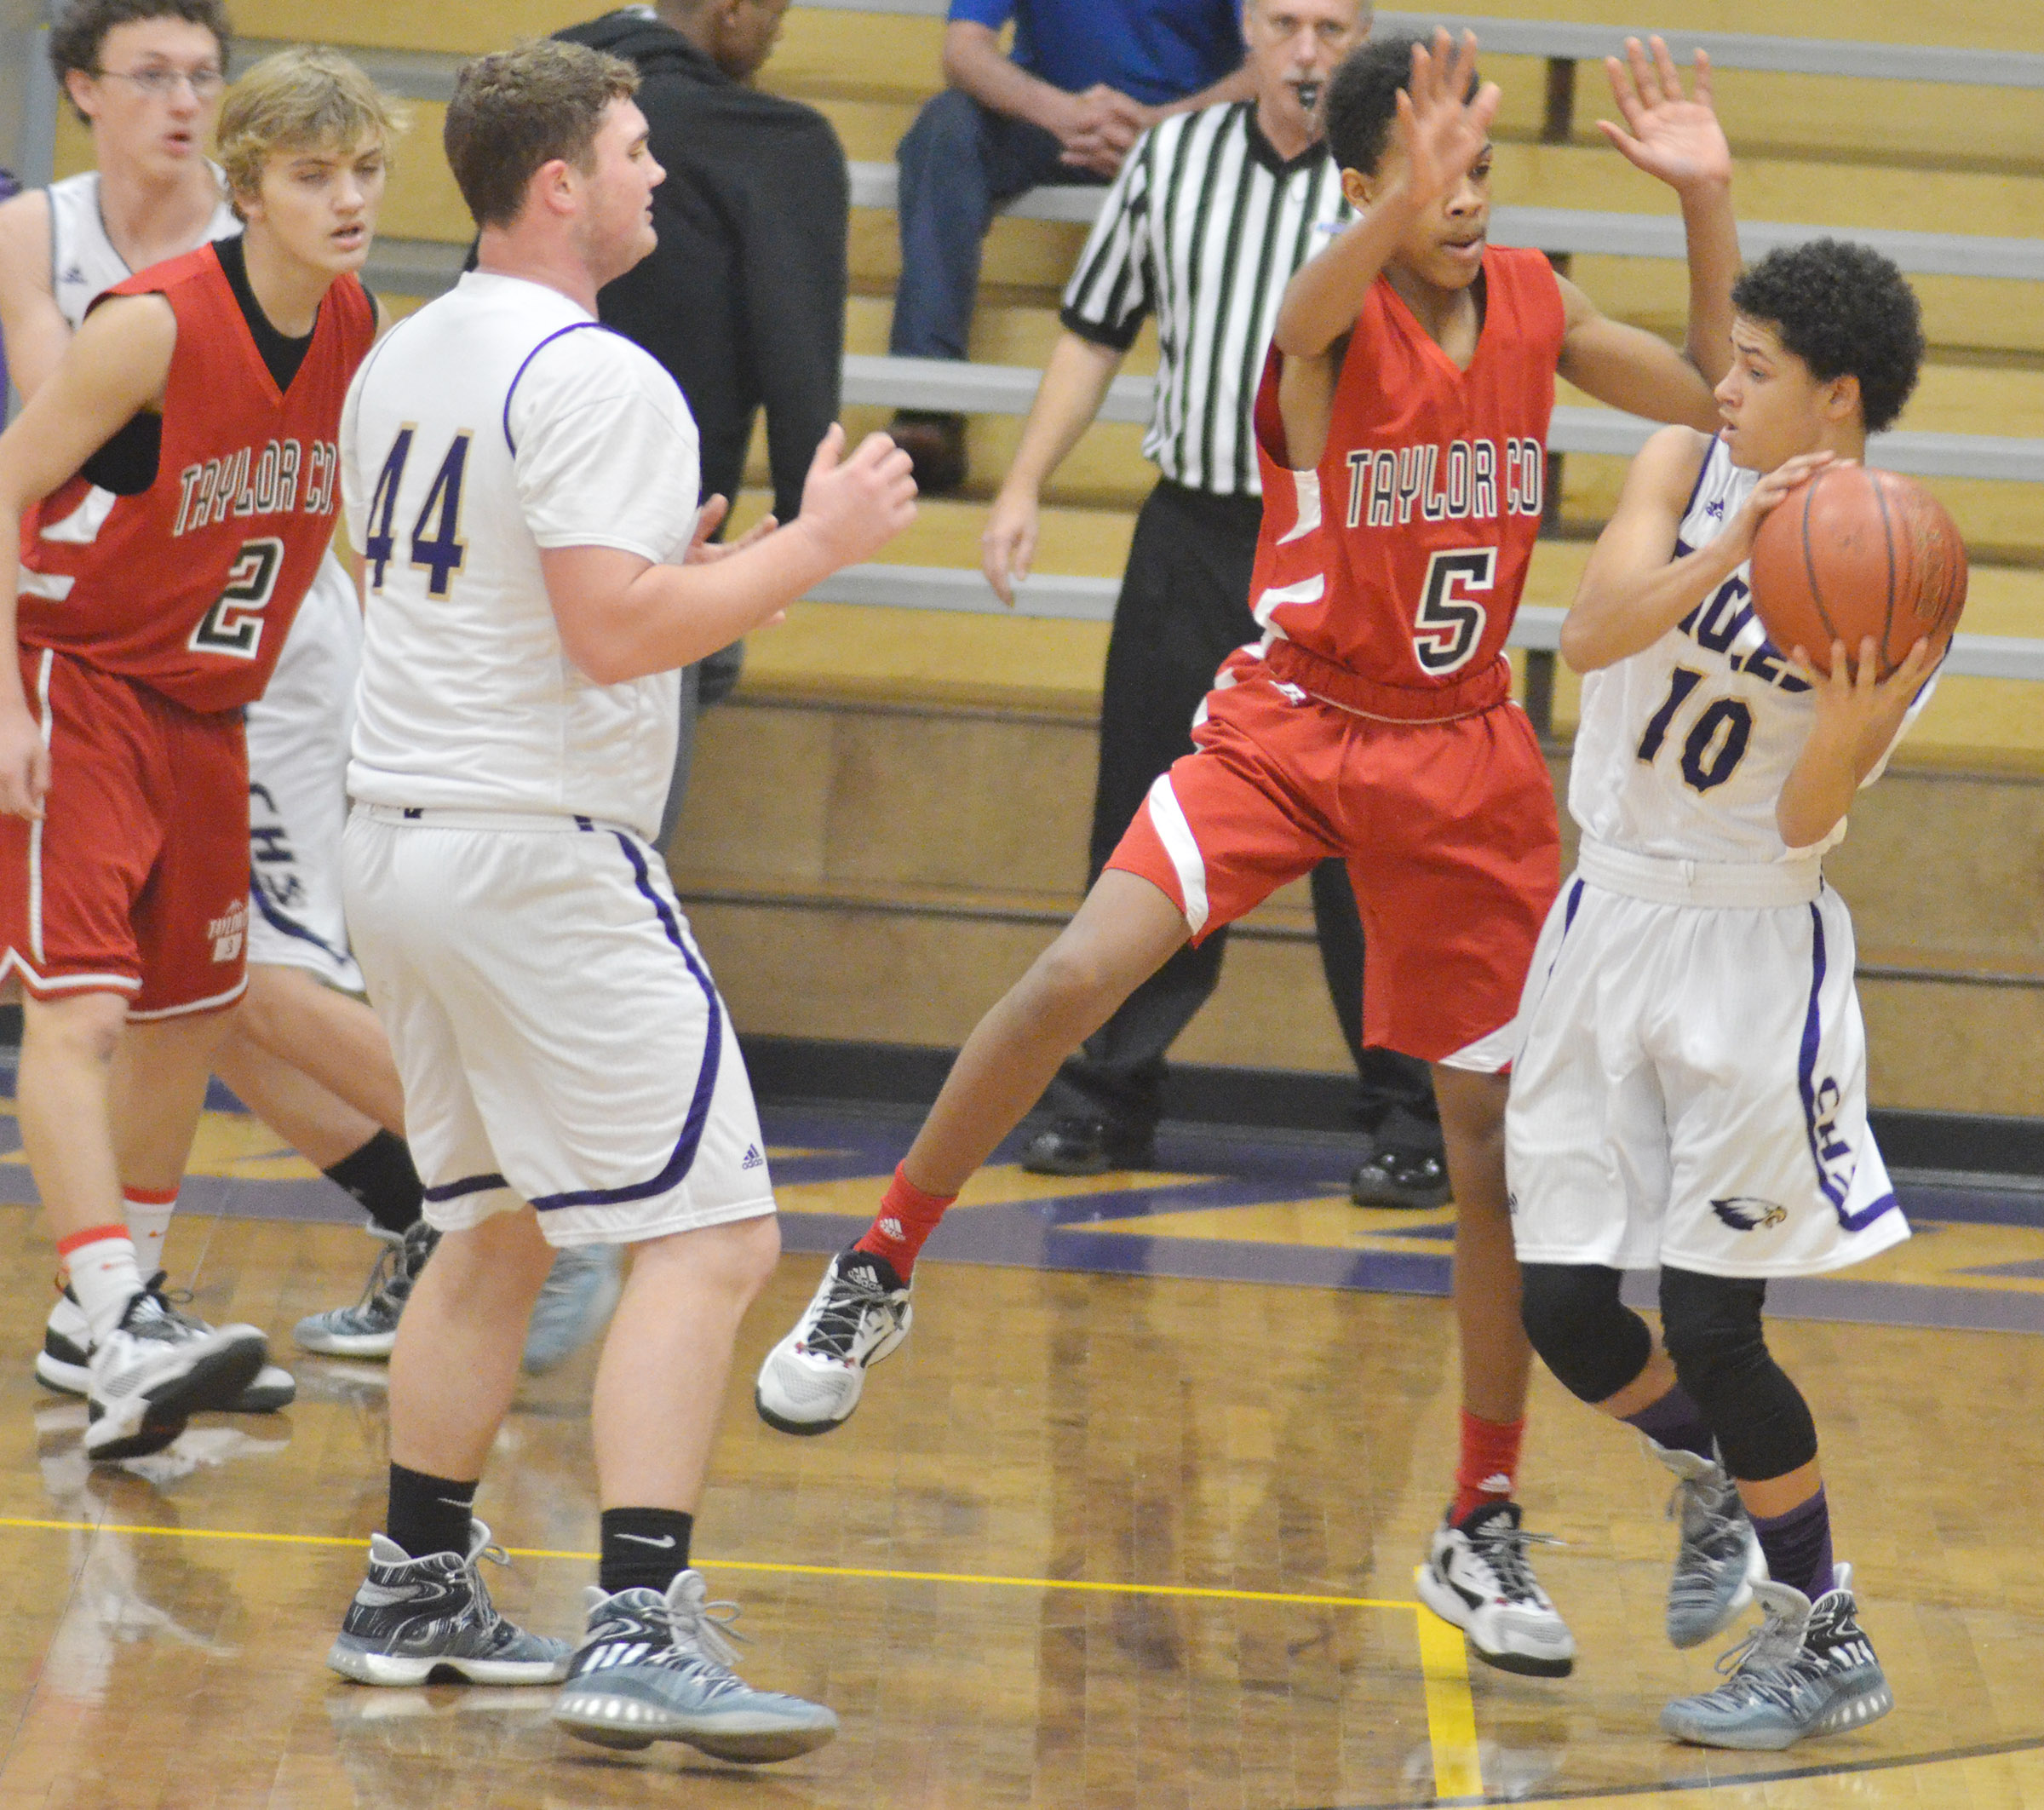 CHS freshman Mikael Vaught looks to pass.